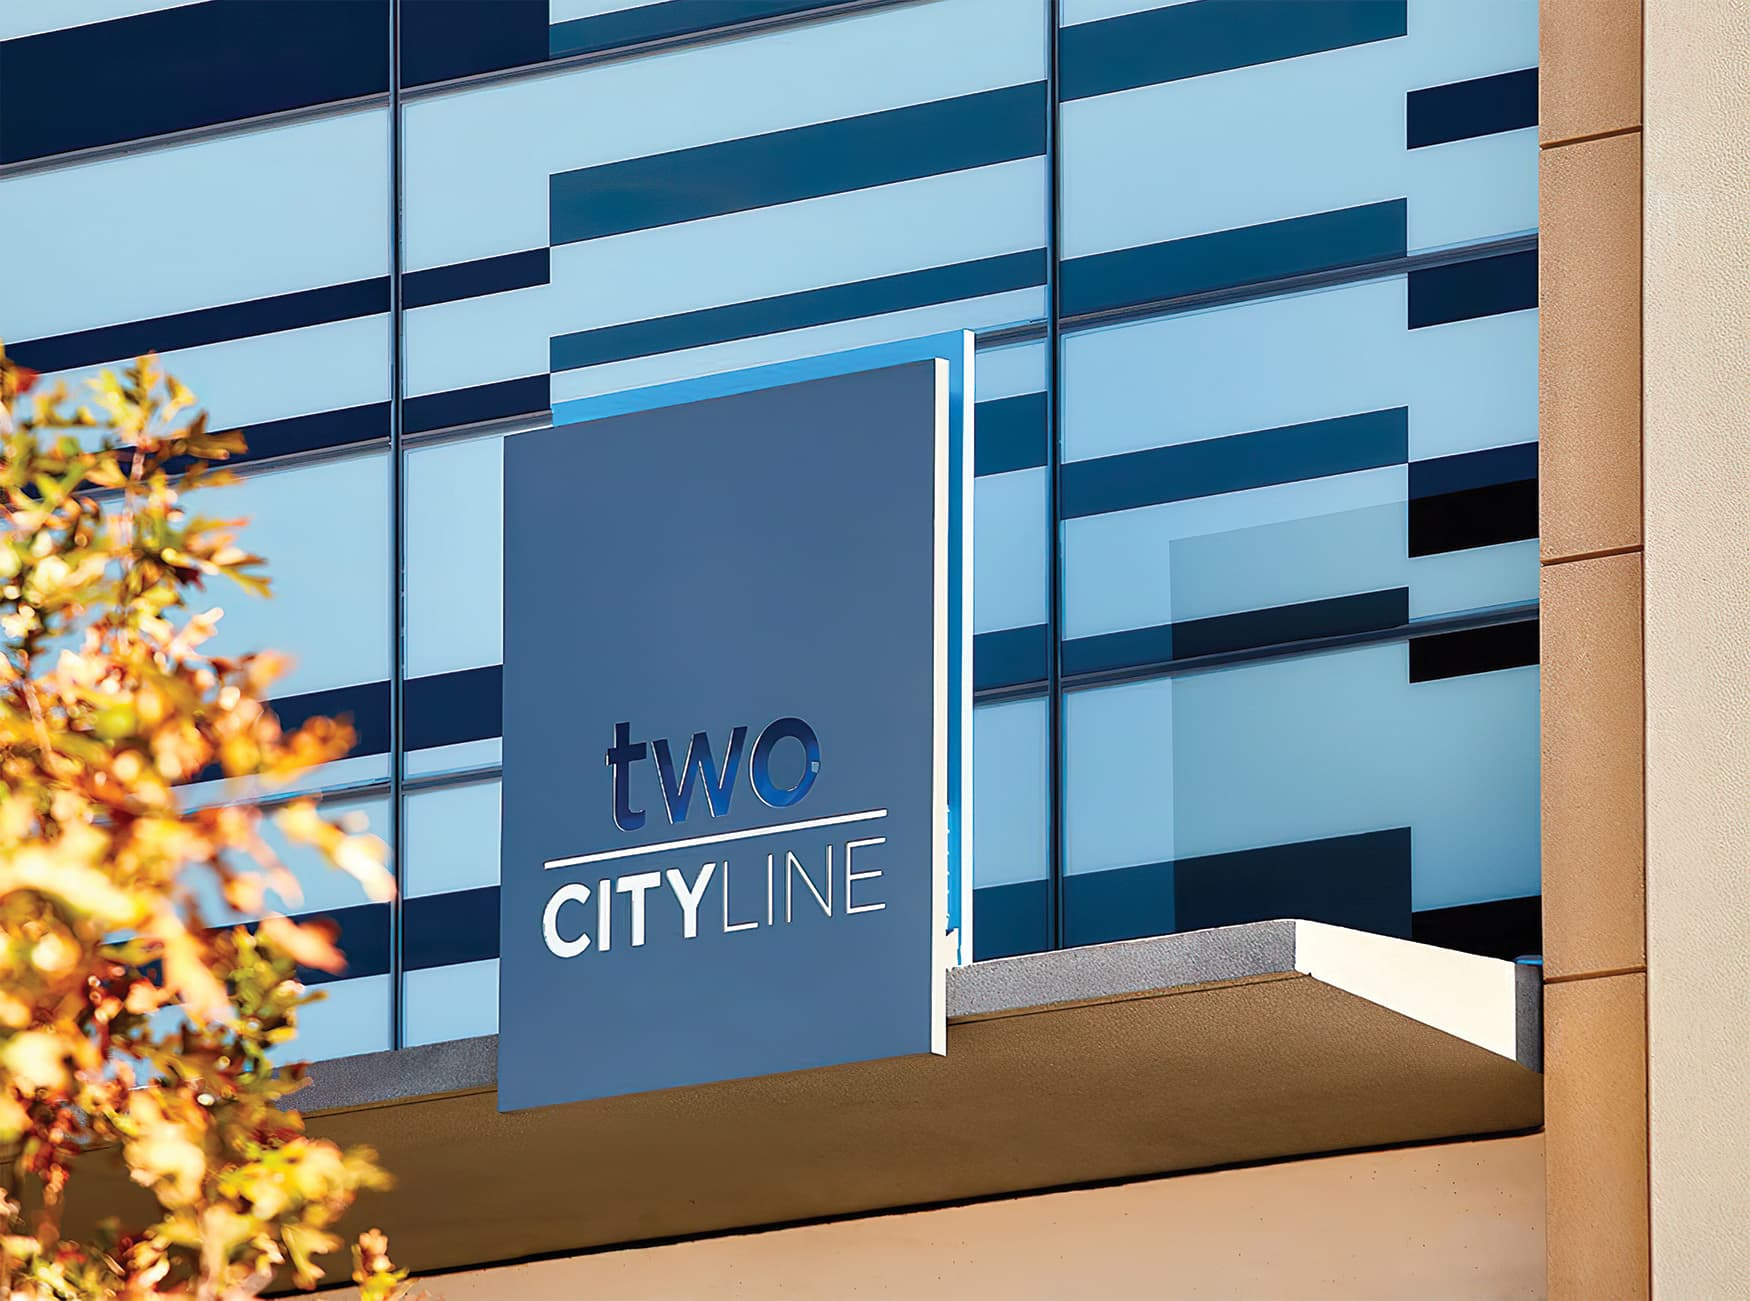 CityLine a mixed-use development in Dallas, Texas. Identity and wayfinding design.